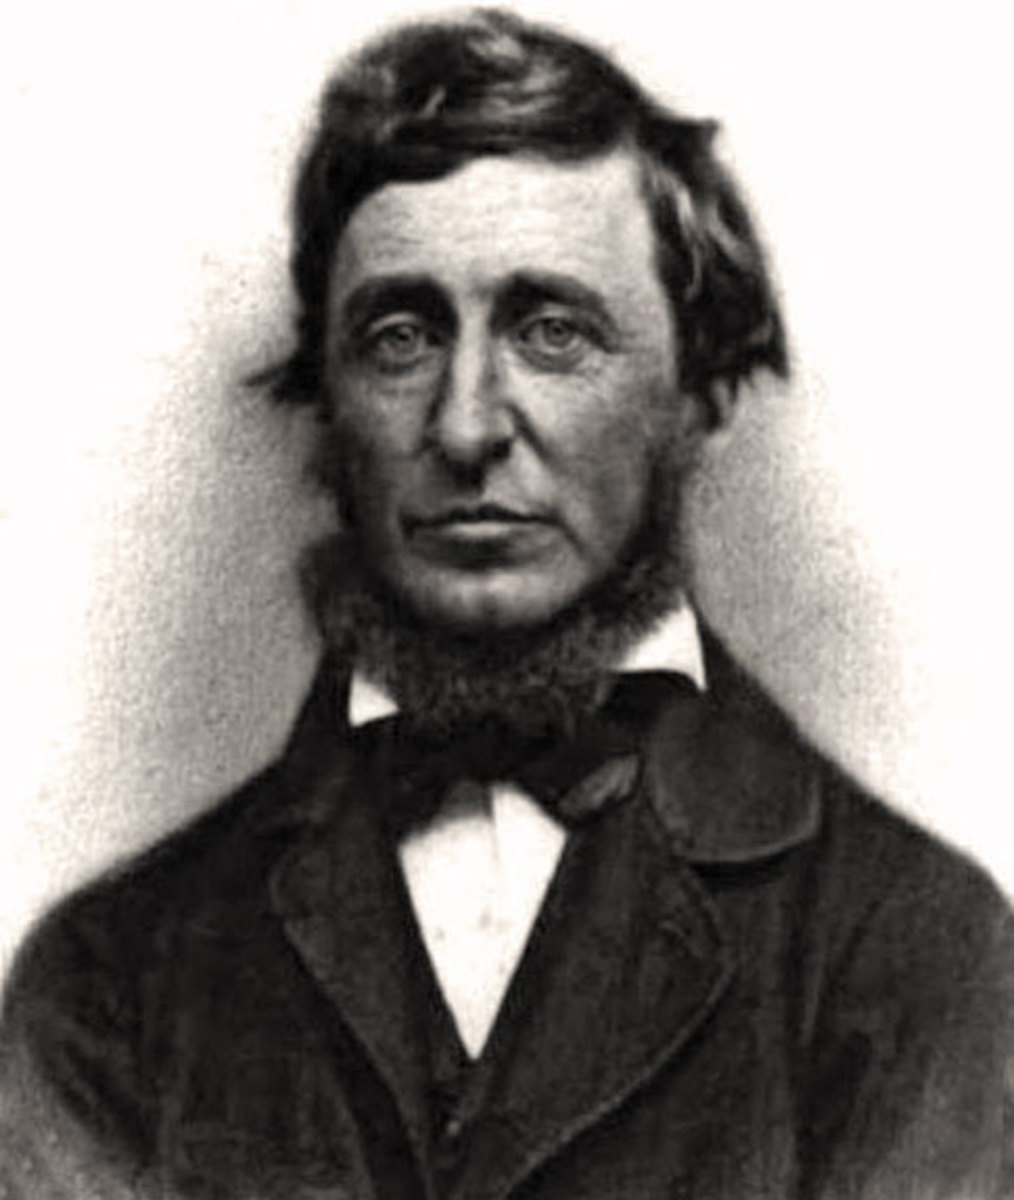 a comparison of moby dick by herman melville and walden by henry david thoreau Moby dick a matter of  literary works born into the american renaissance—such as henry david thoreau's walden, herman melville's moby  critical comparison.